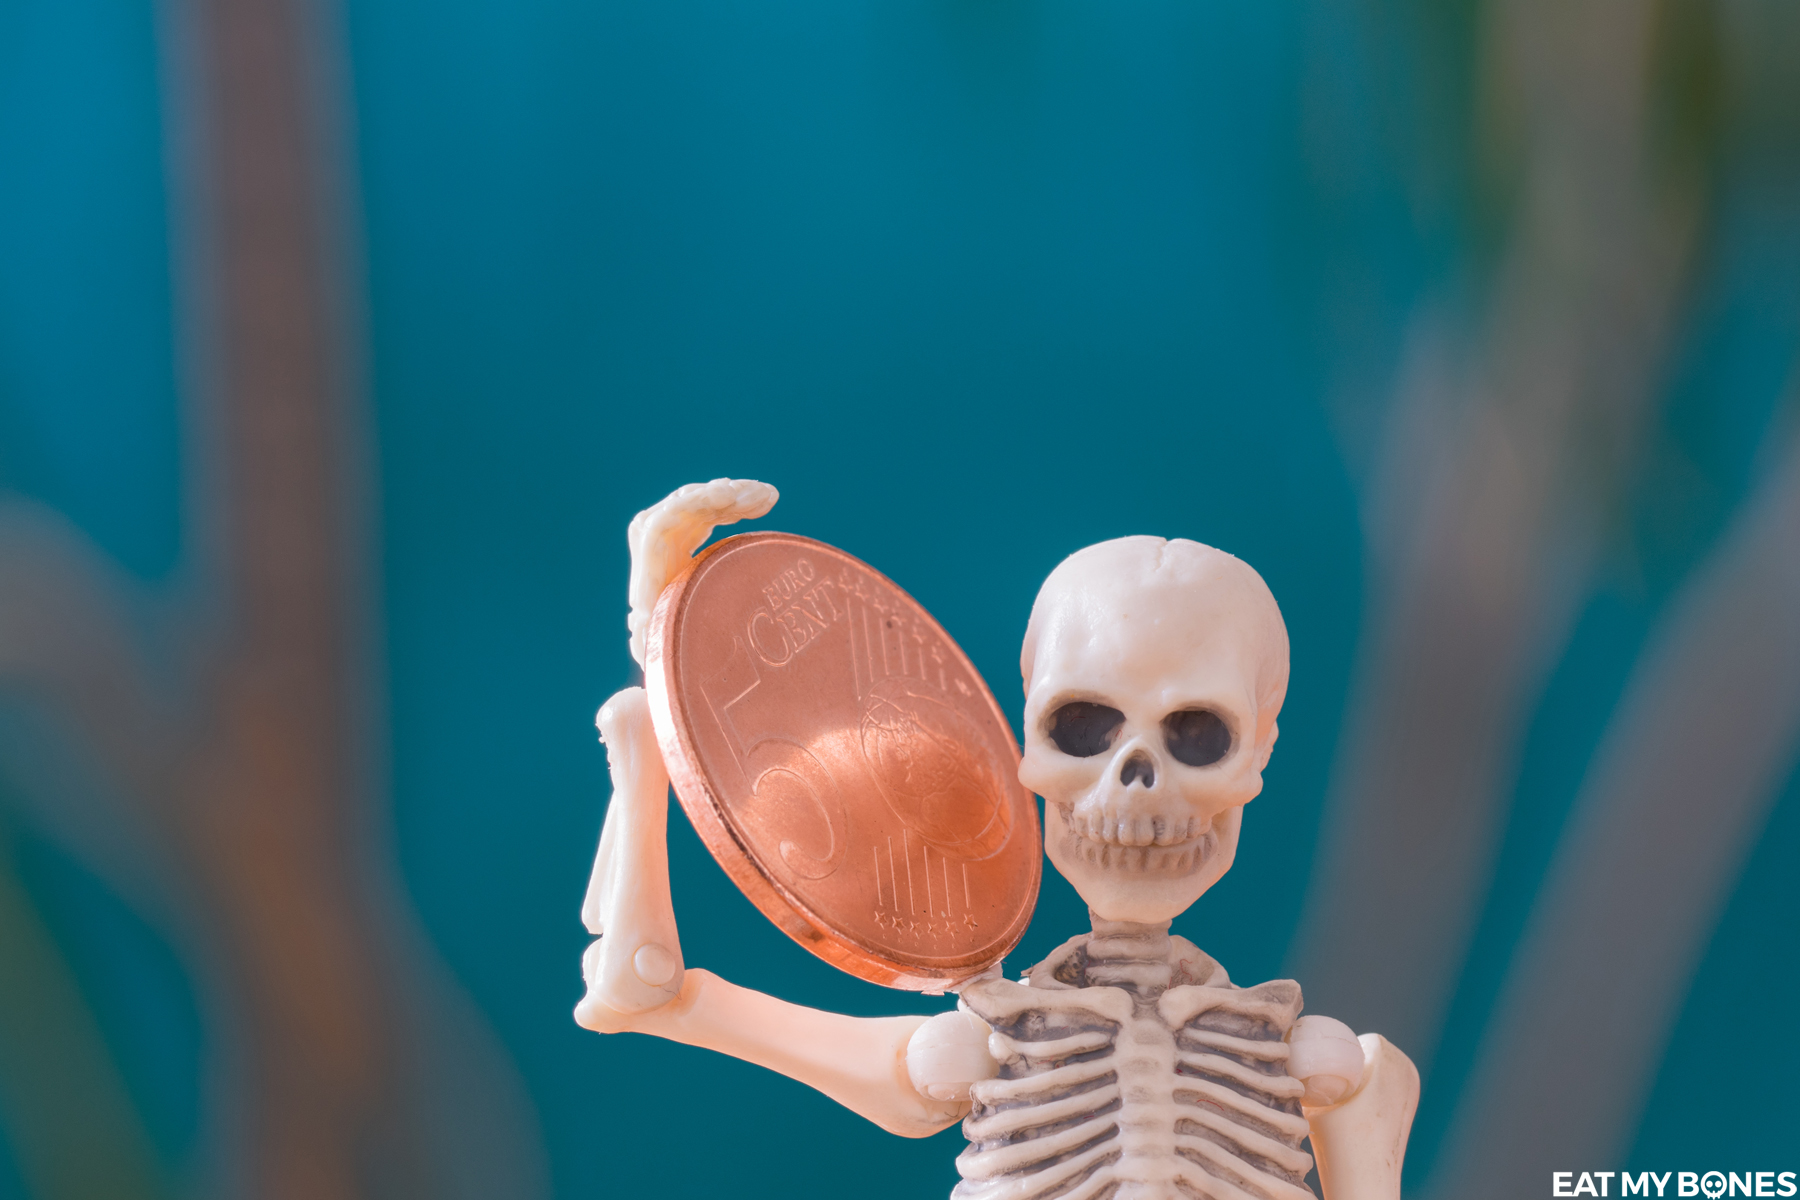 Money - Pose Skeleton - Toy photography - Miniature - Eat my Bonesy_Bones_Pose_Skeleton_Coin